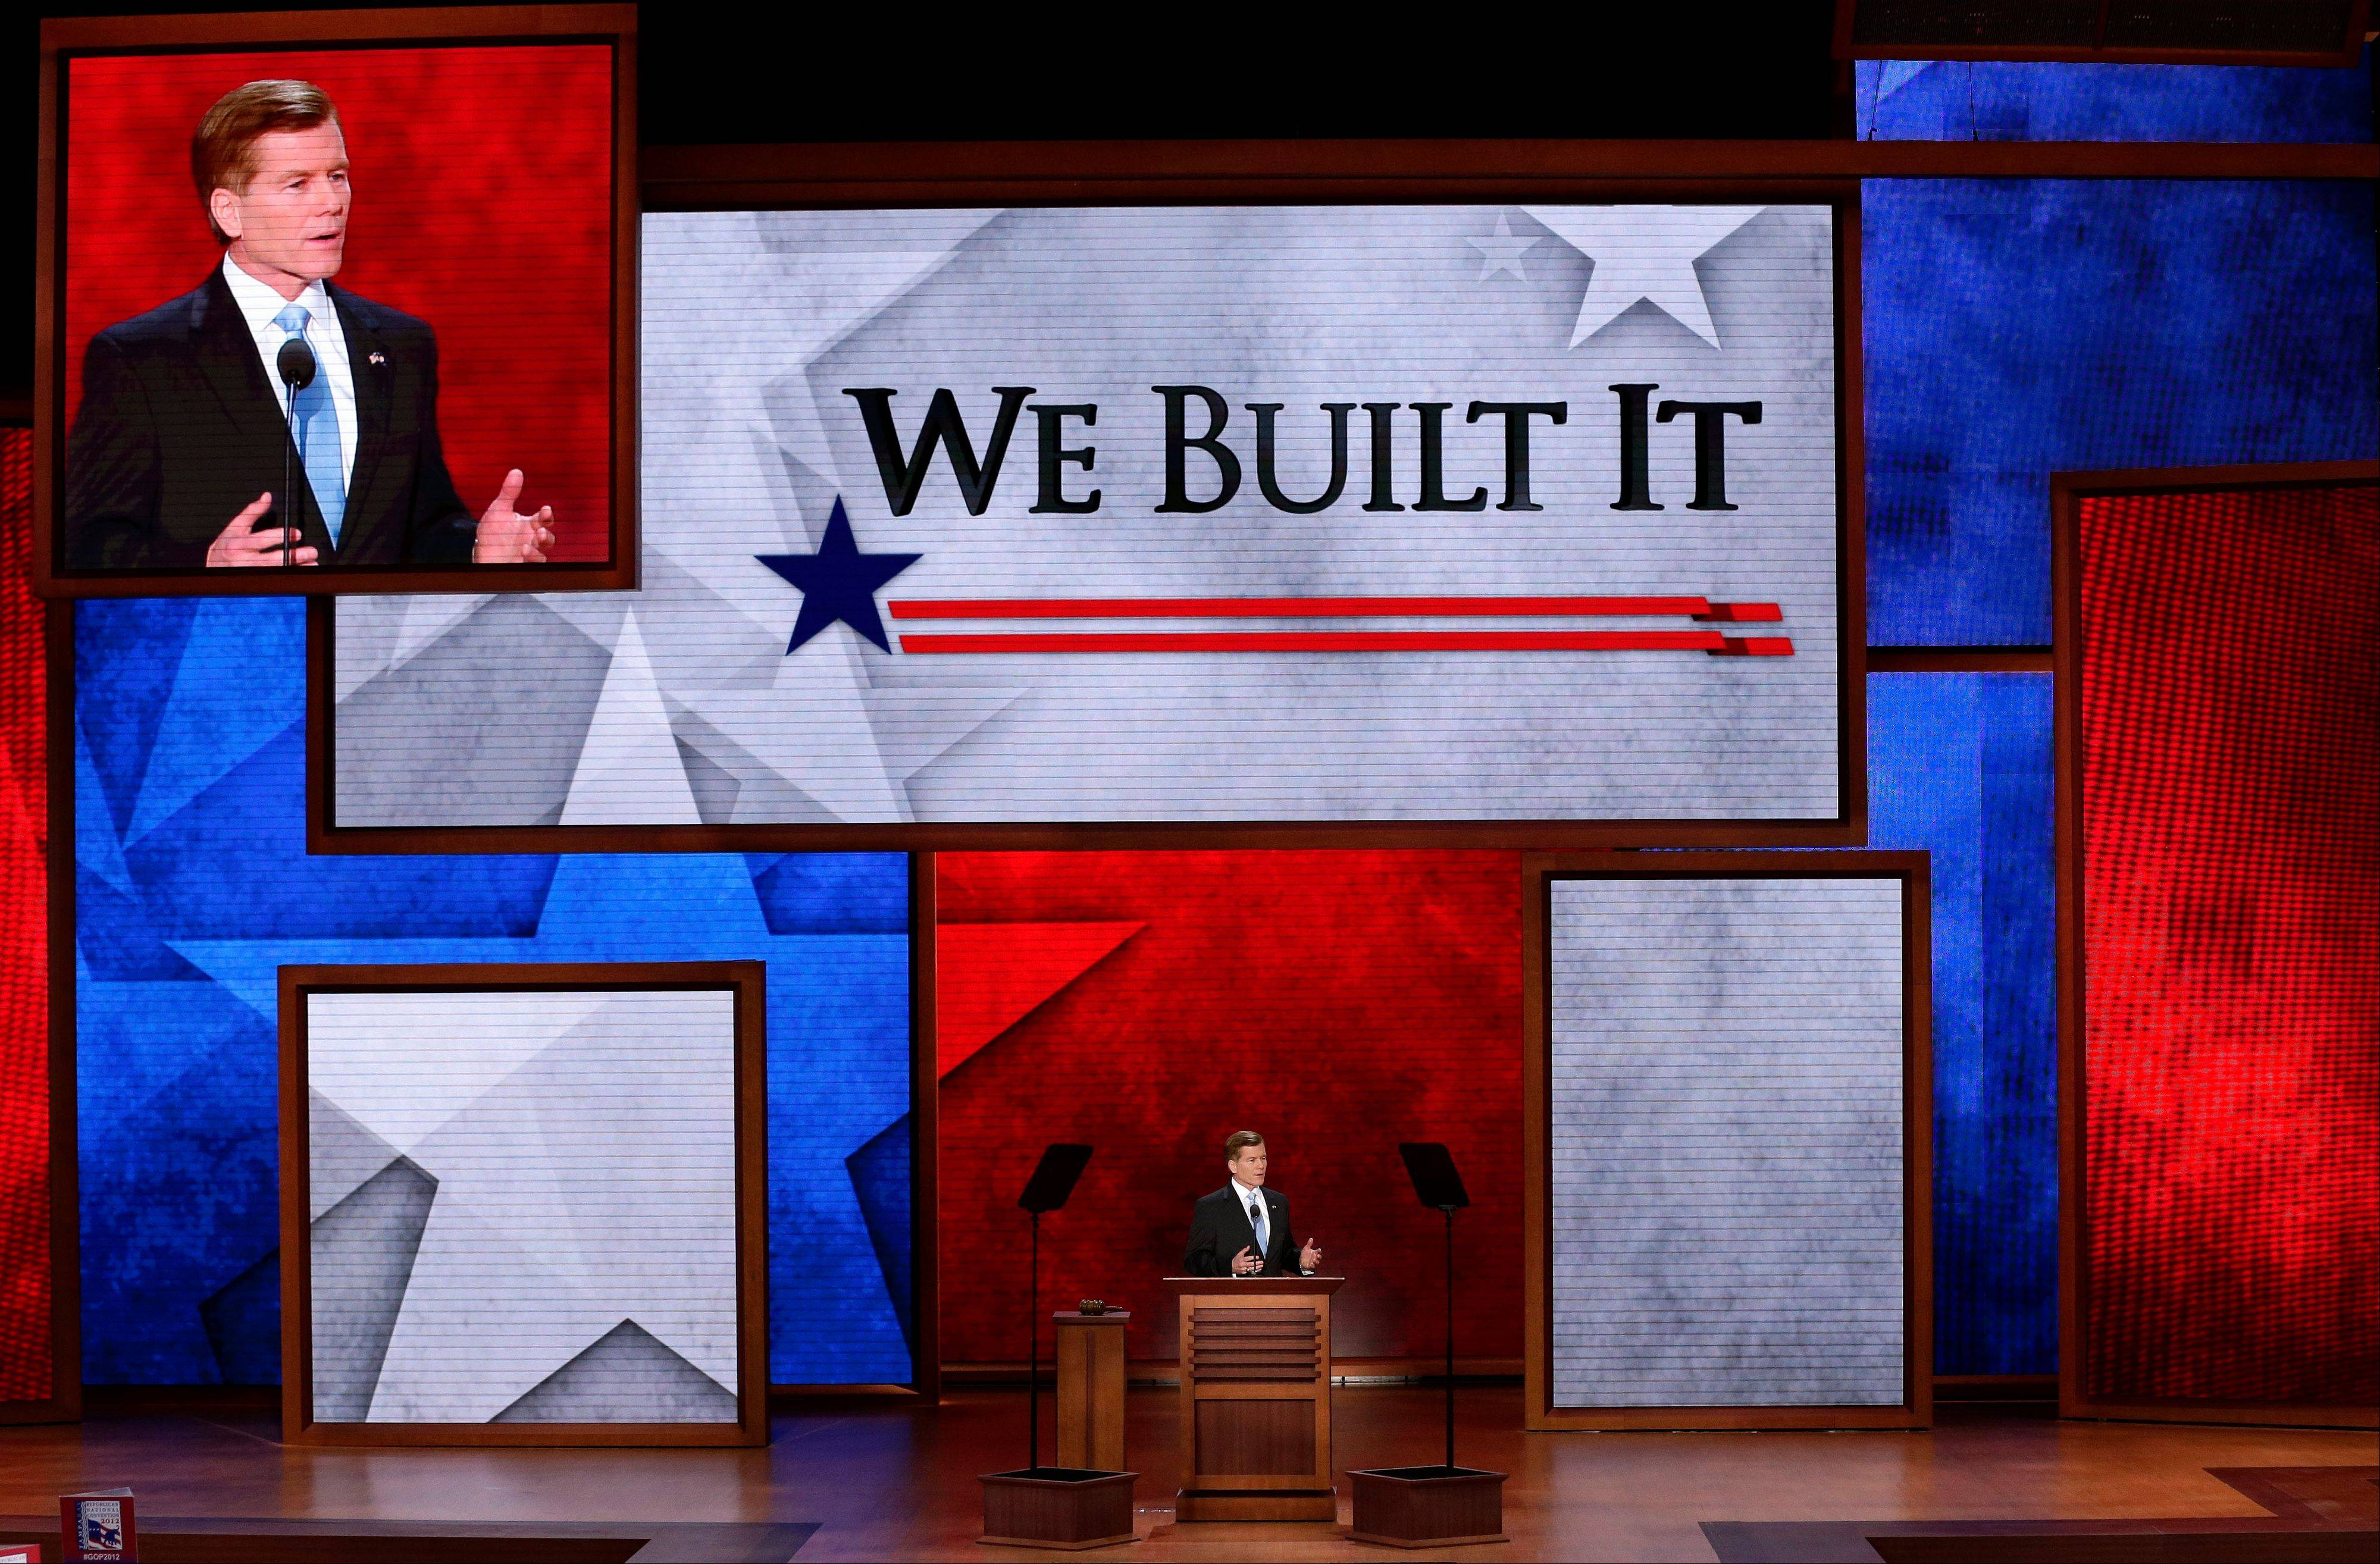 Virginia Governor Bob McDonnell Tuesday addresses the Republican National Convention in Tampa, Fla.